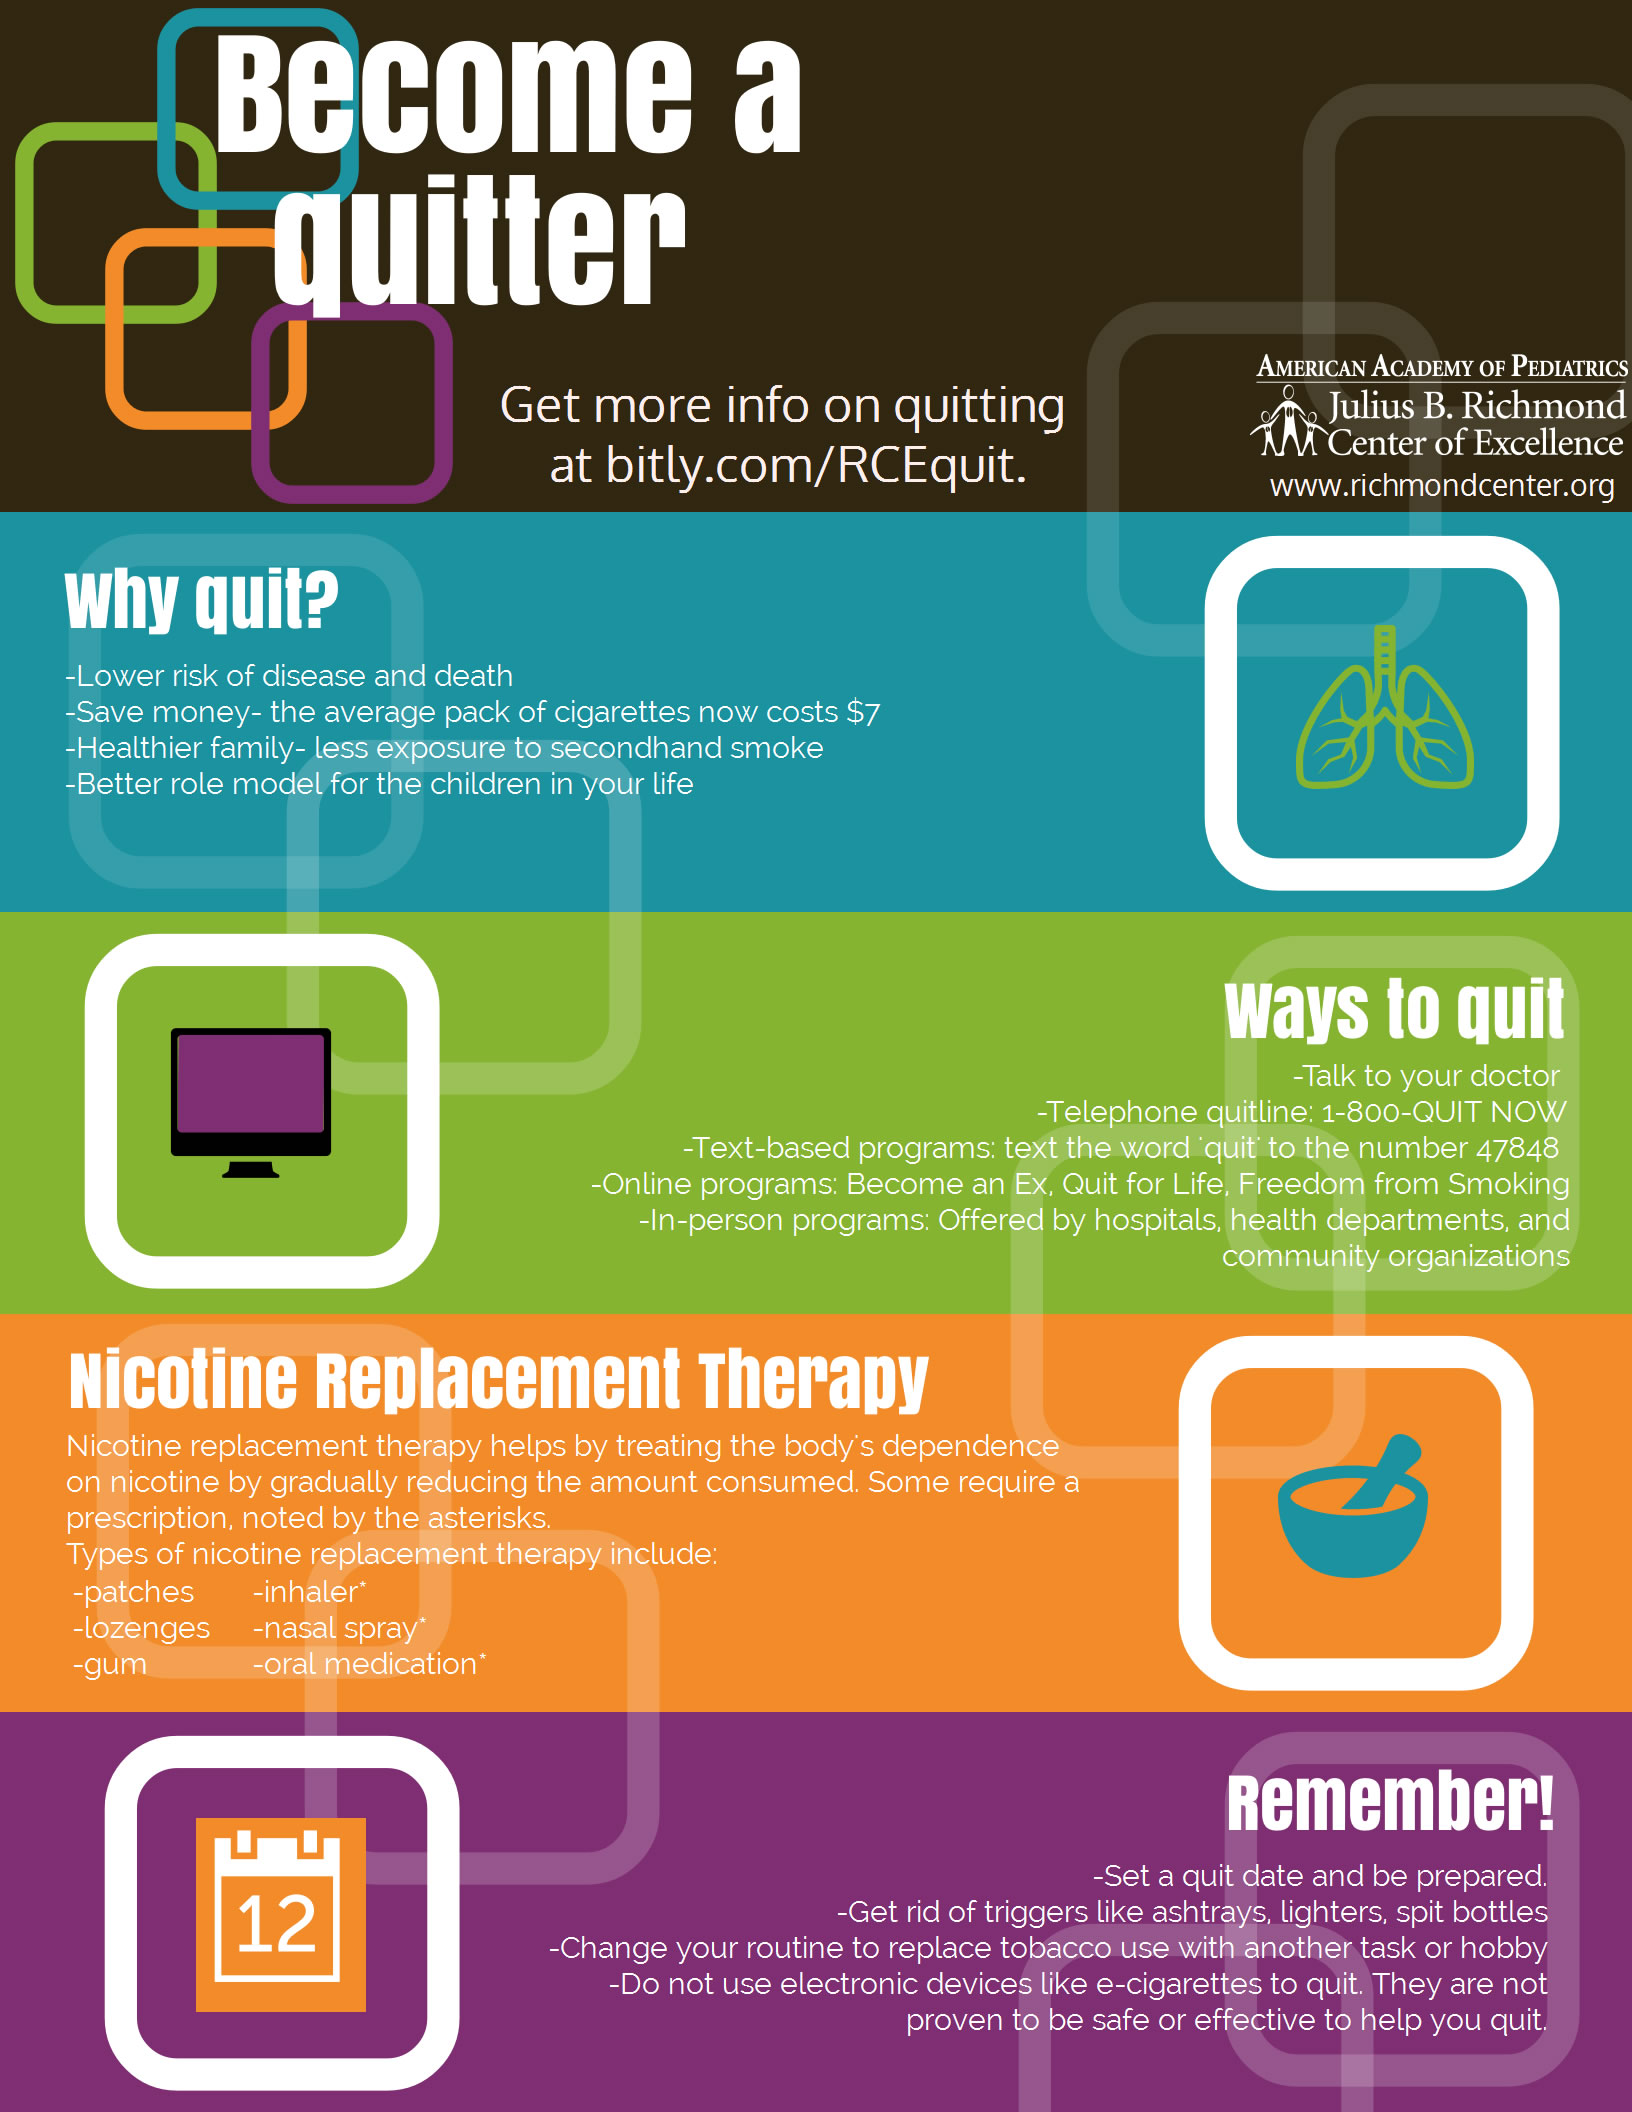 Become a Quitter - AAP Infographic